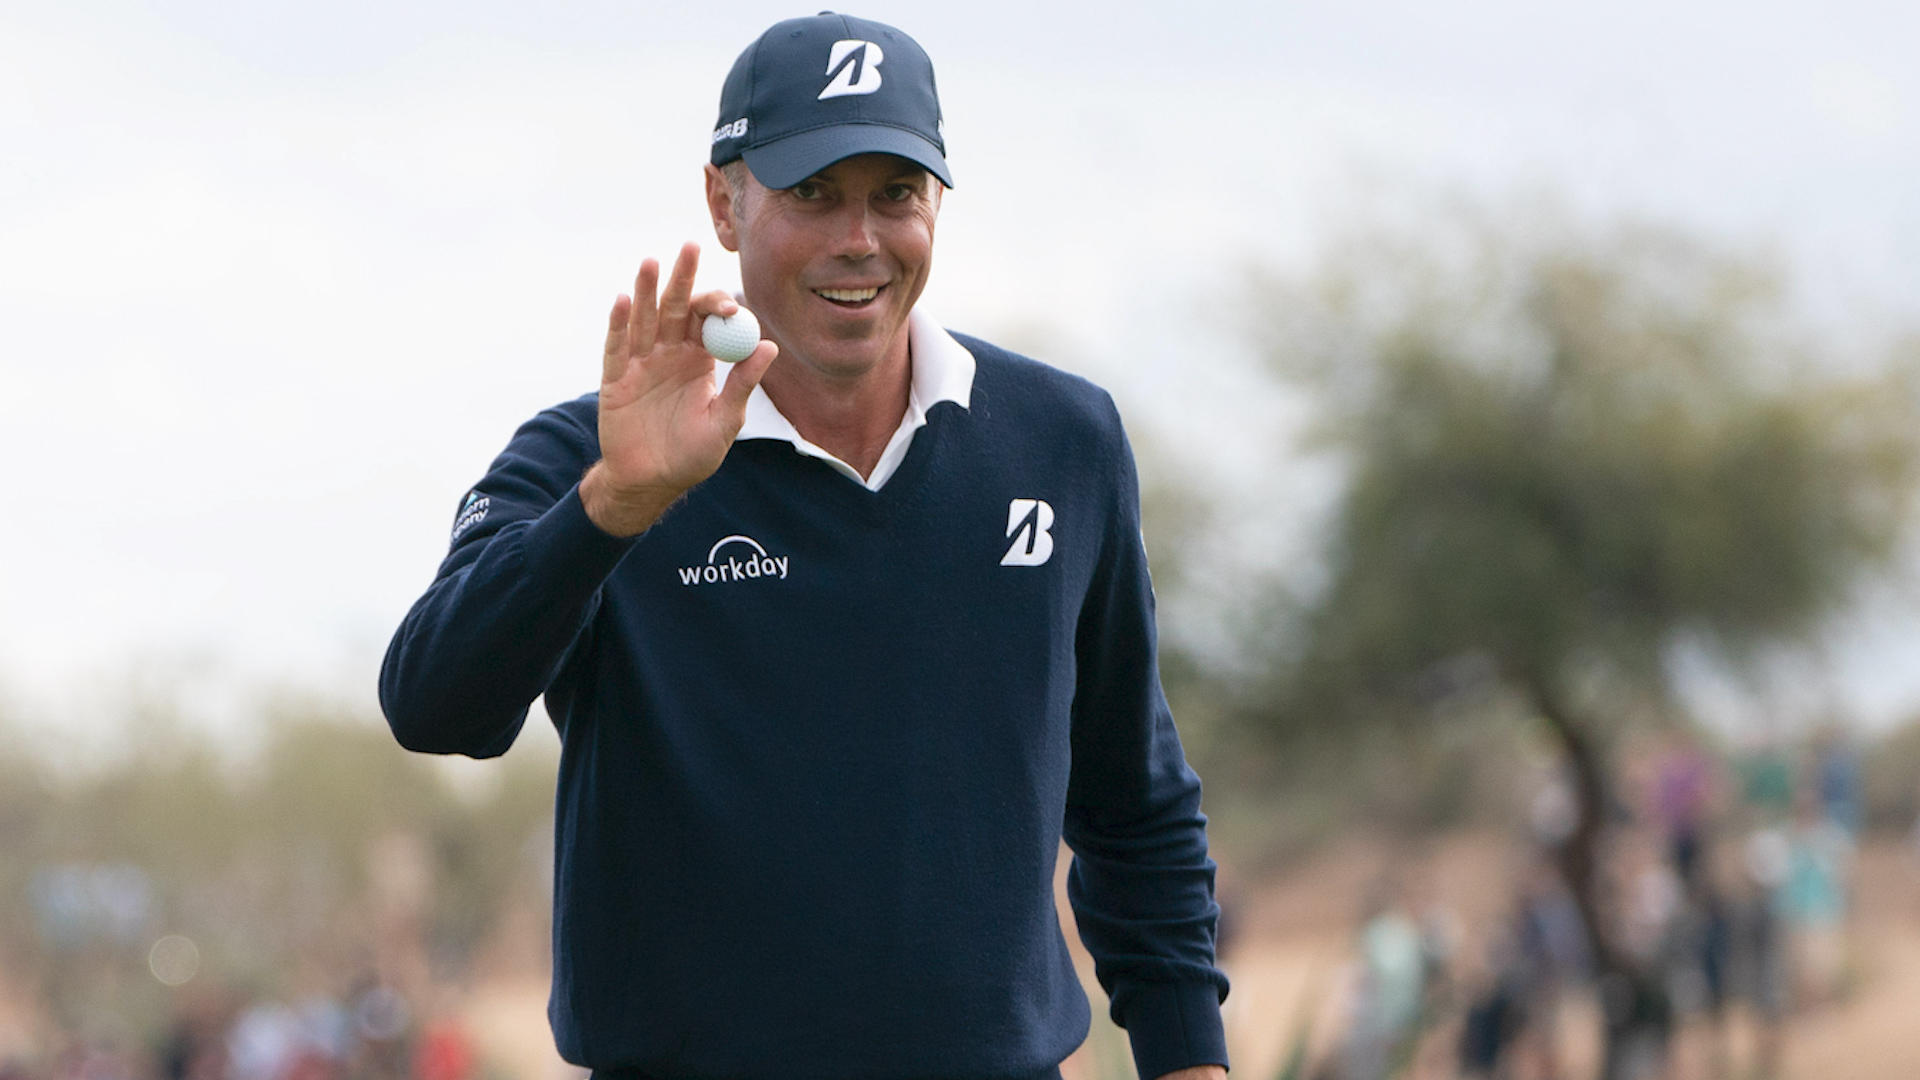 Matt Kuchar apologizes, agrees to pay Mayakoba Classic caddie 'El Tucan' full amount requested